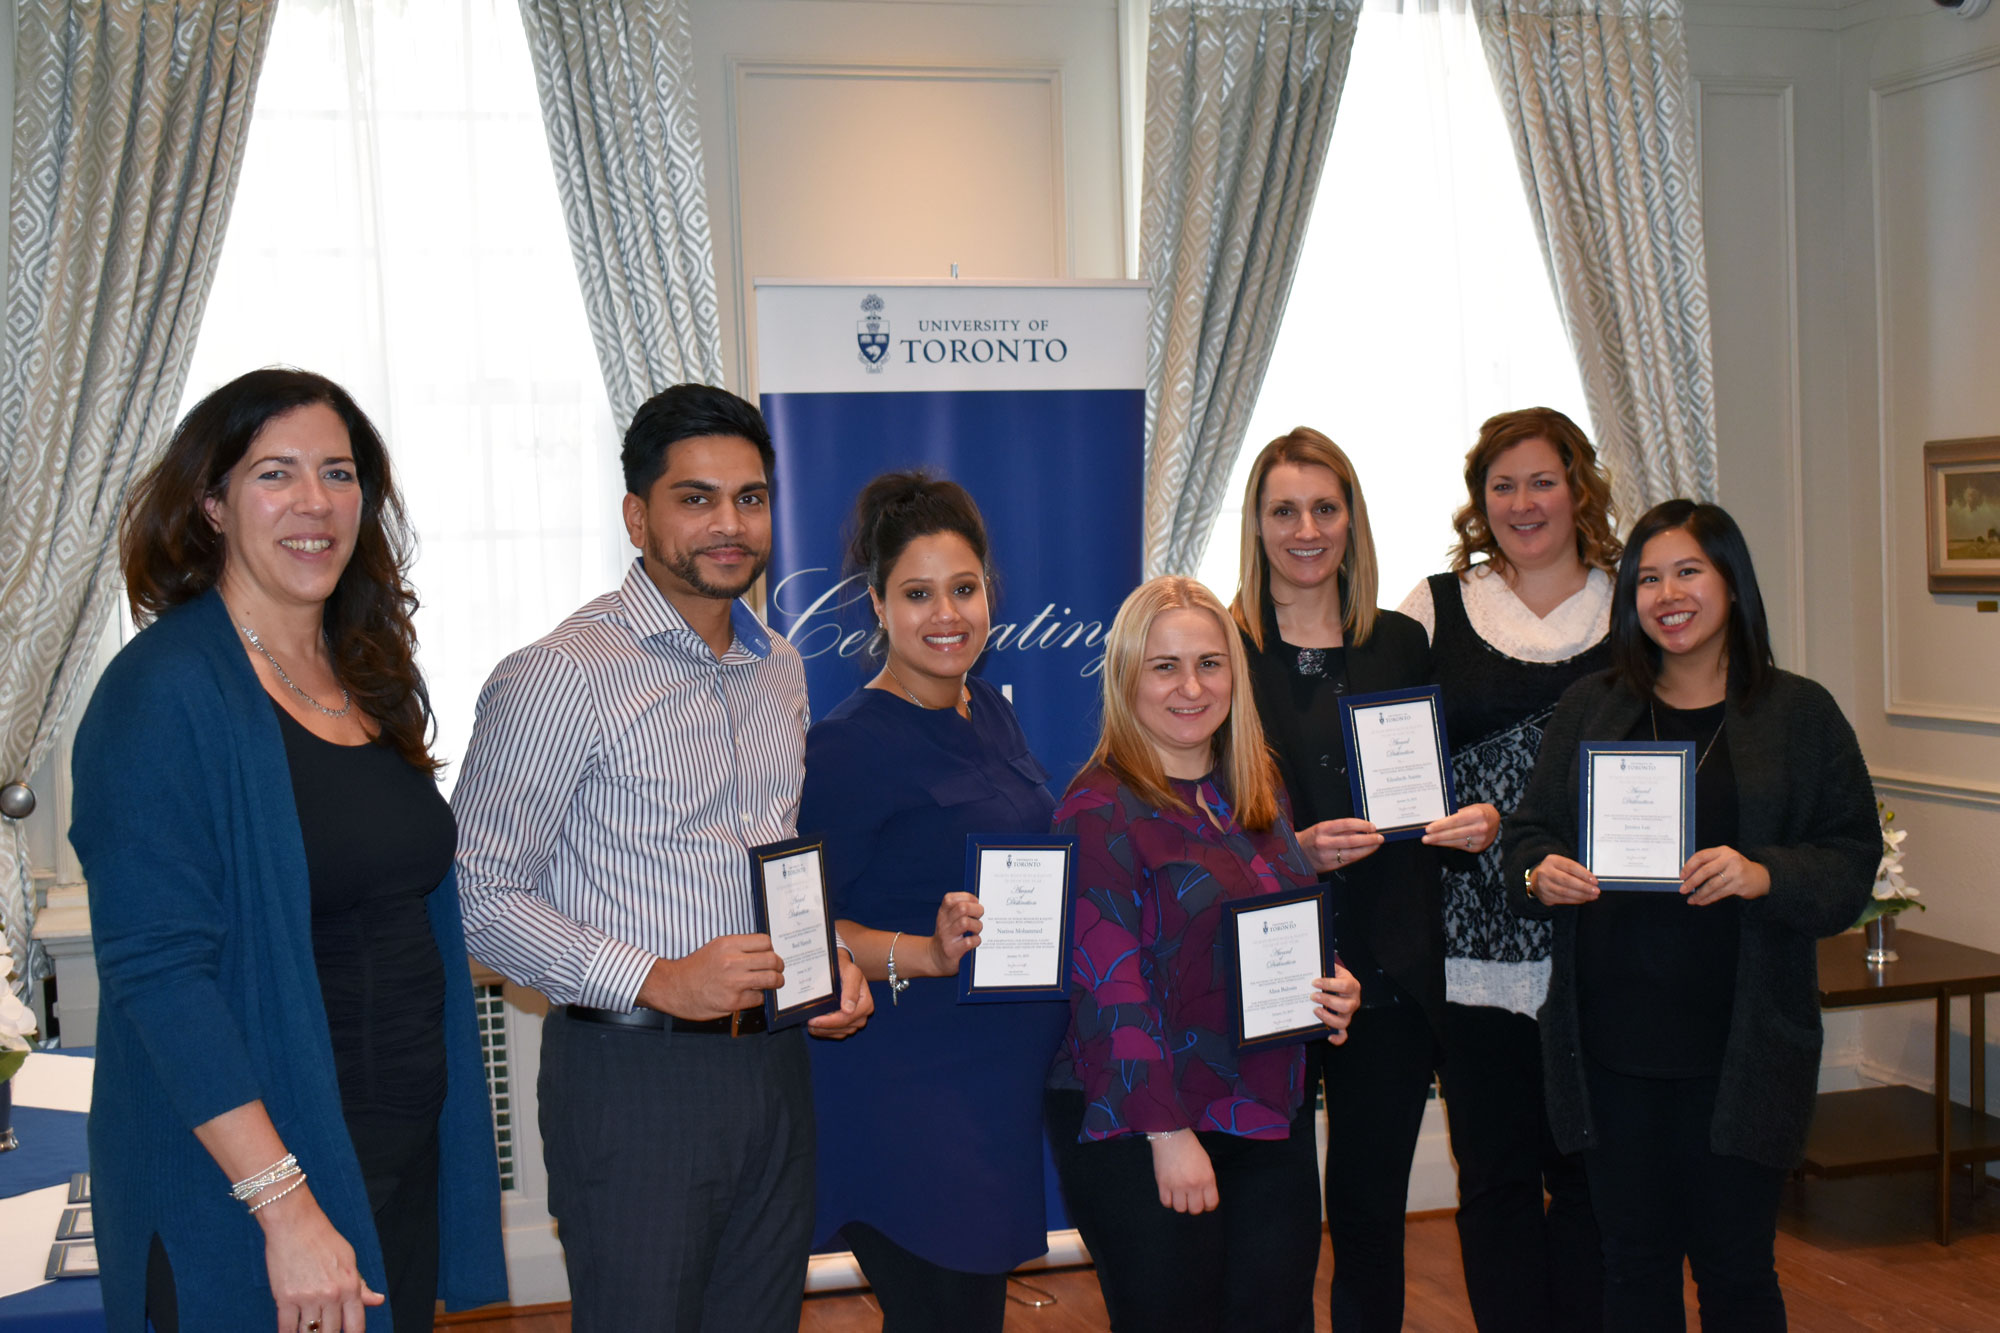 HR staff from the Faculty of Medicine pose with their HRE awards of distinction with VP Kelly Hannah-Moffat and CHRO Erin Jackson